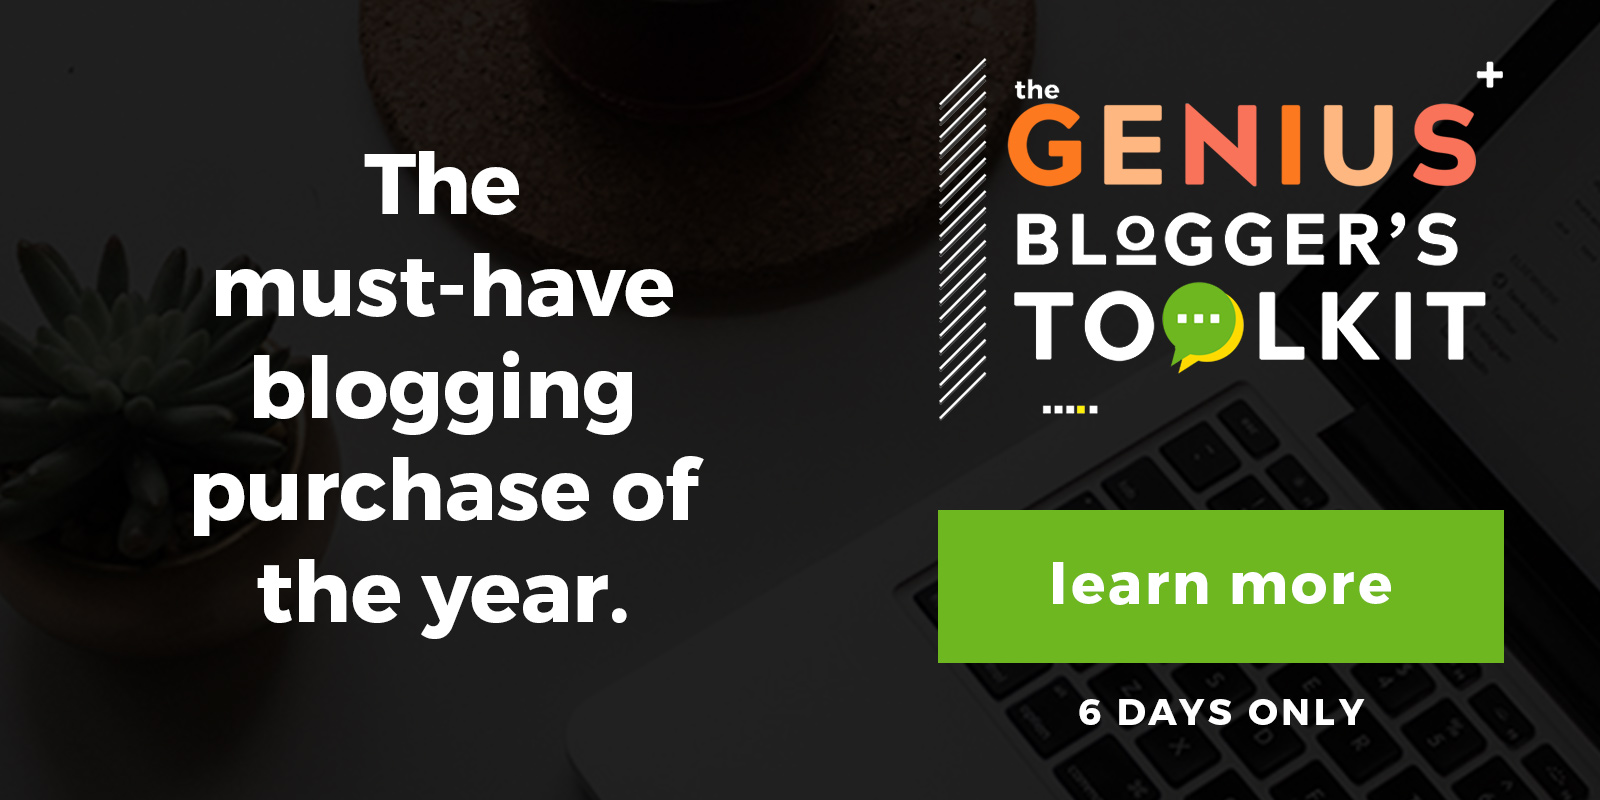 Genius Bloggers Tool Kit, Blogging Tips